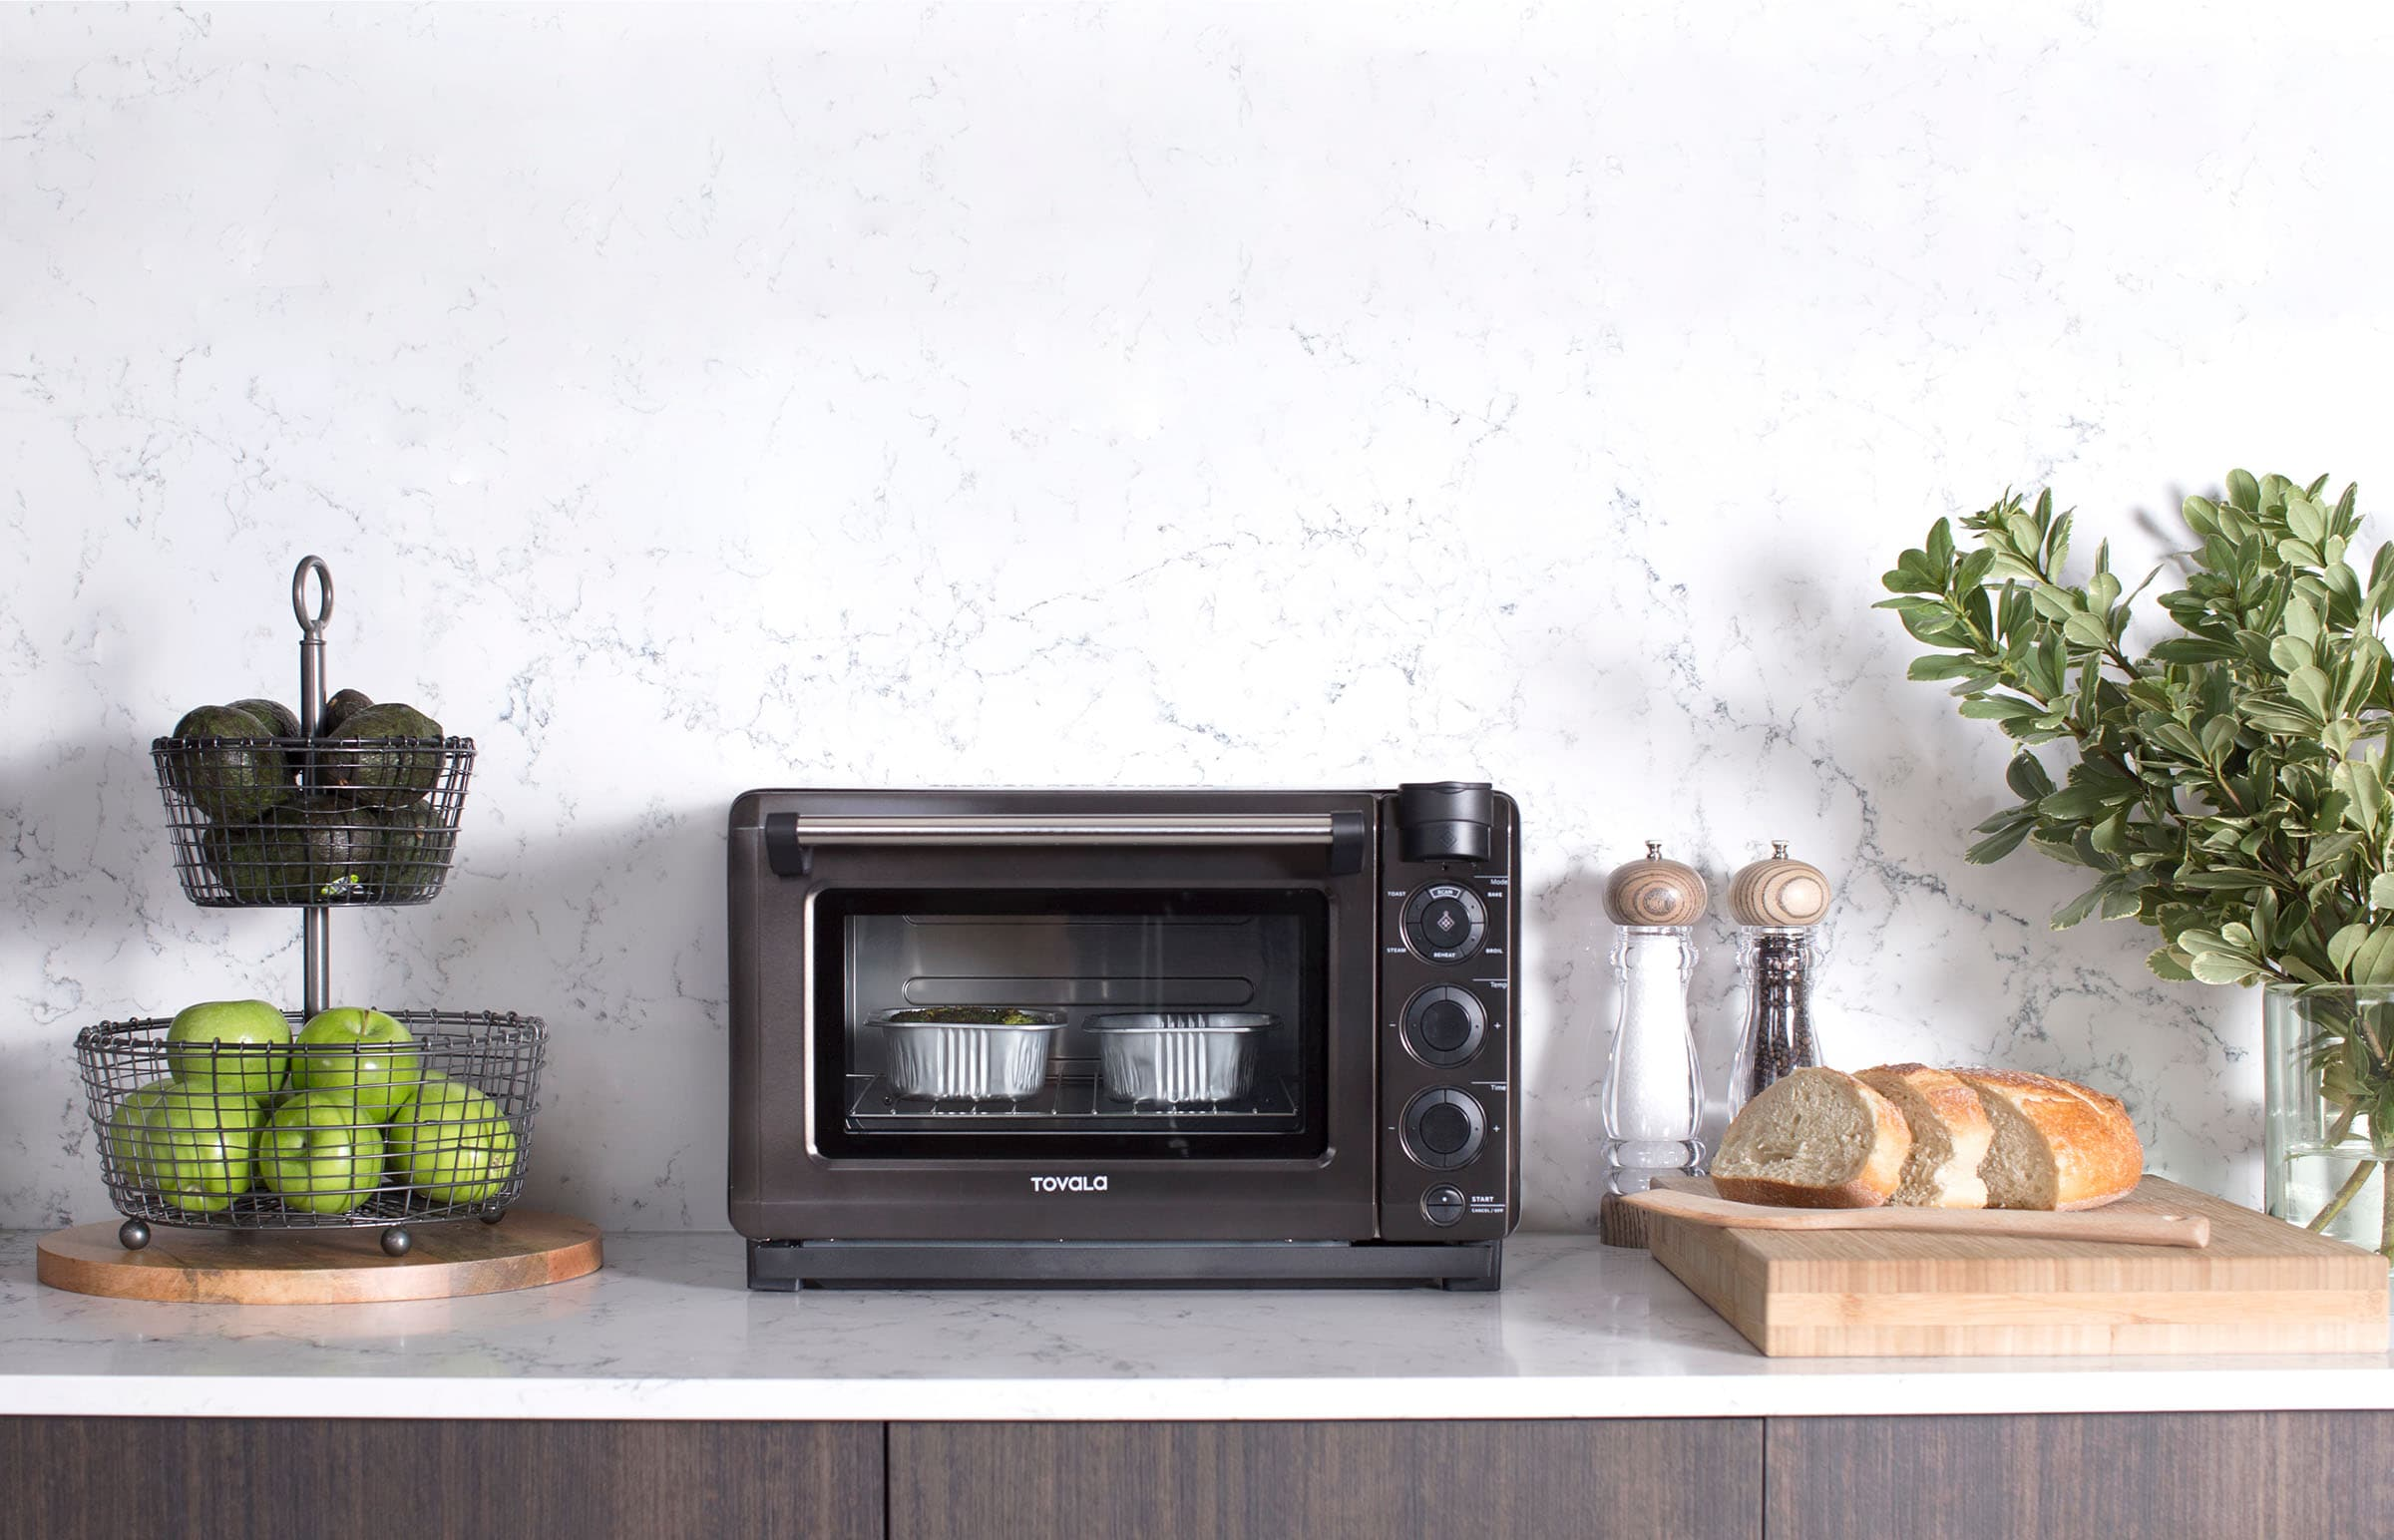 Tovala Oven on a kitchen counter.